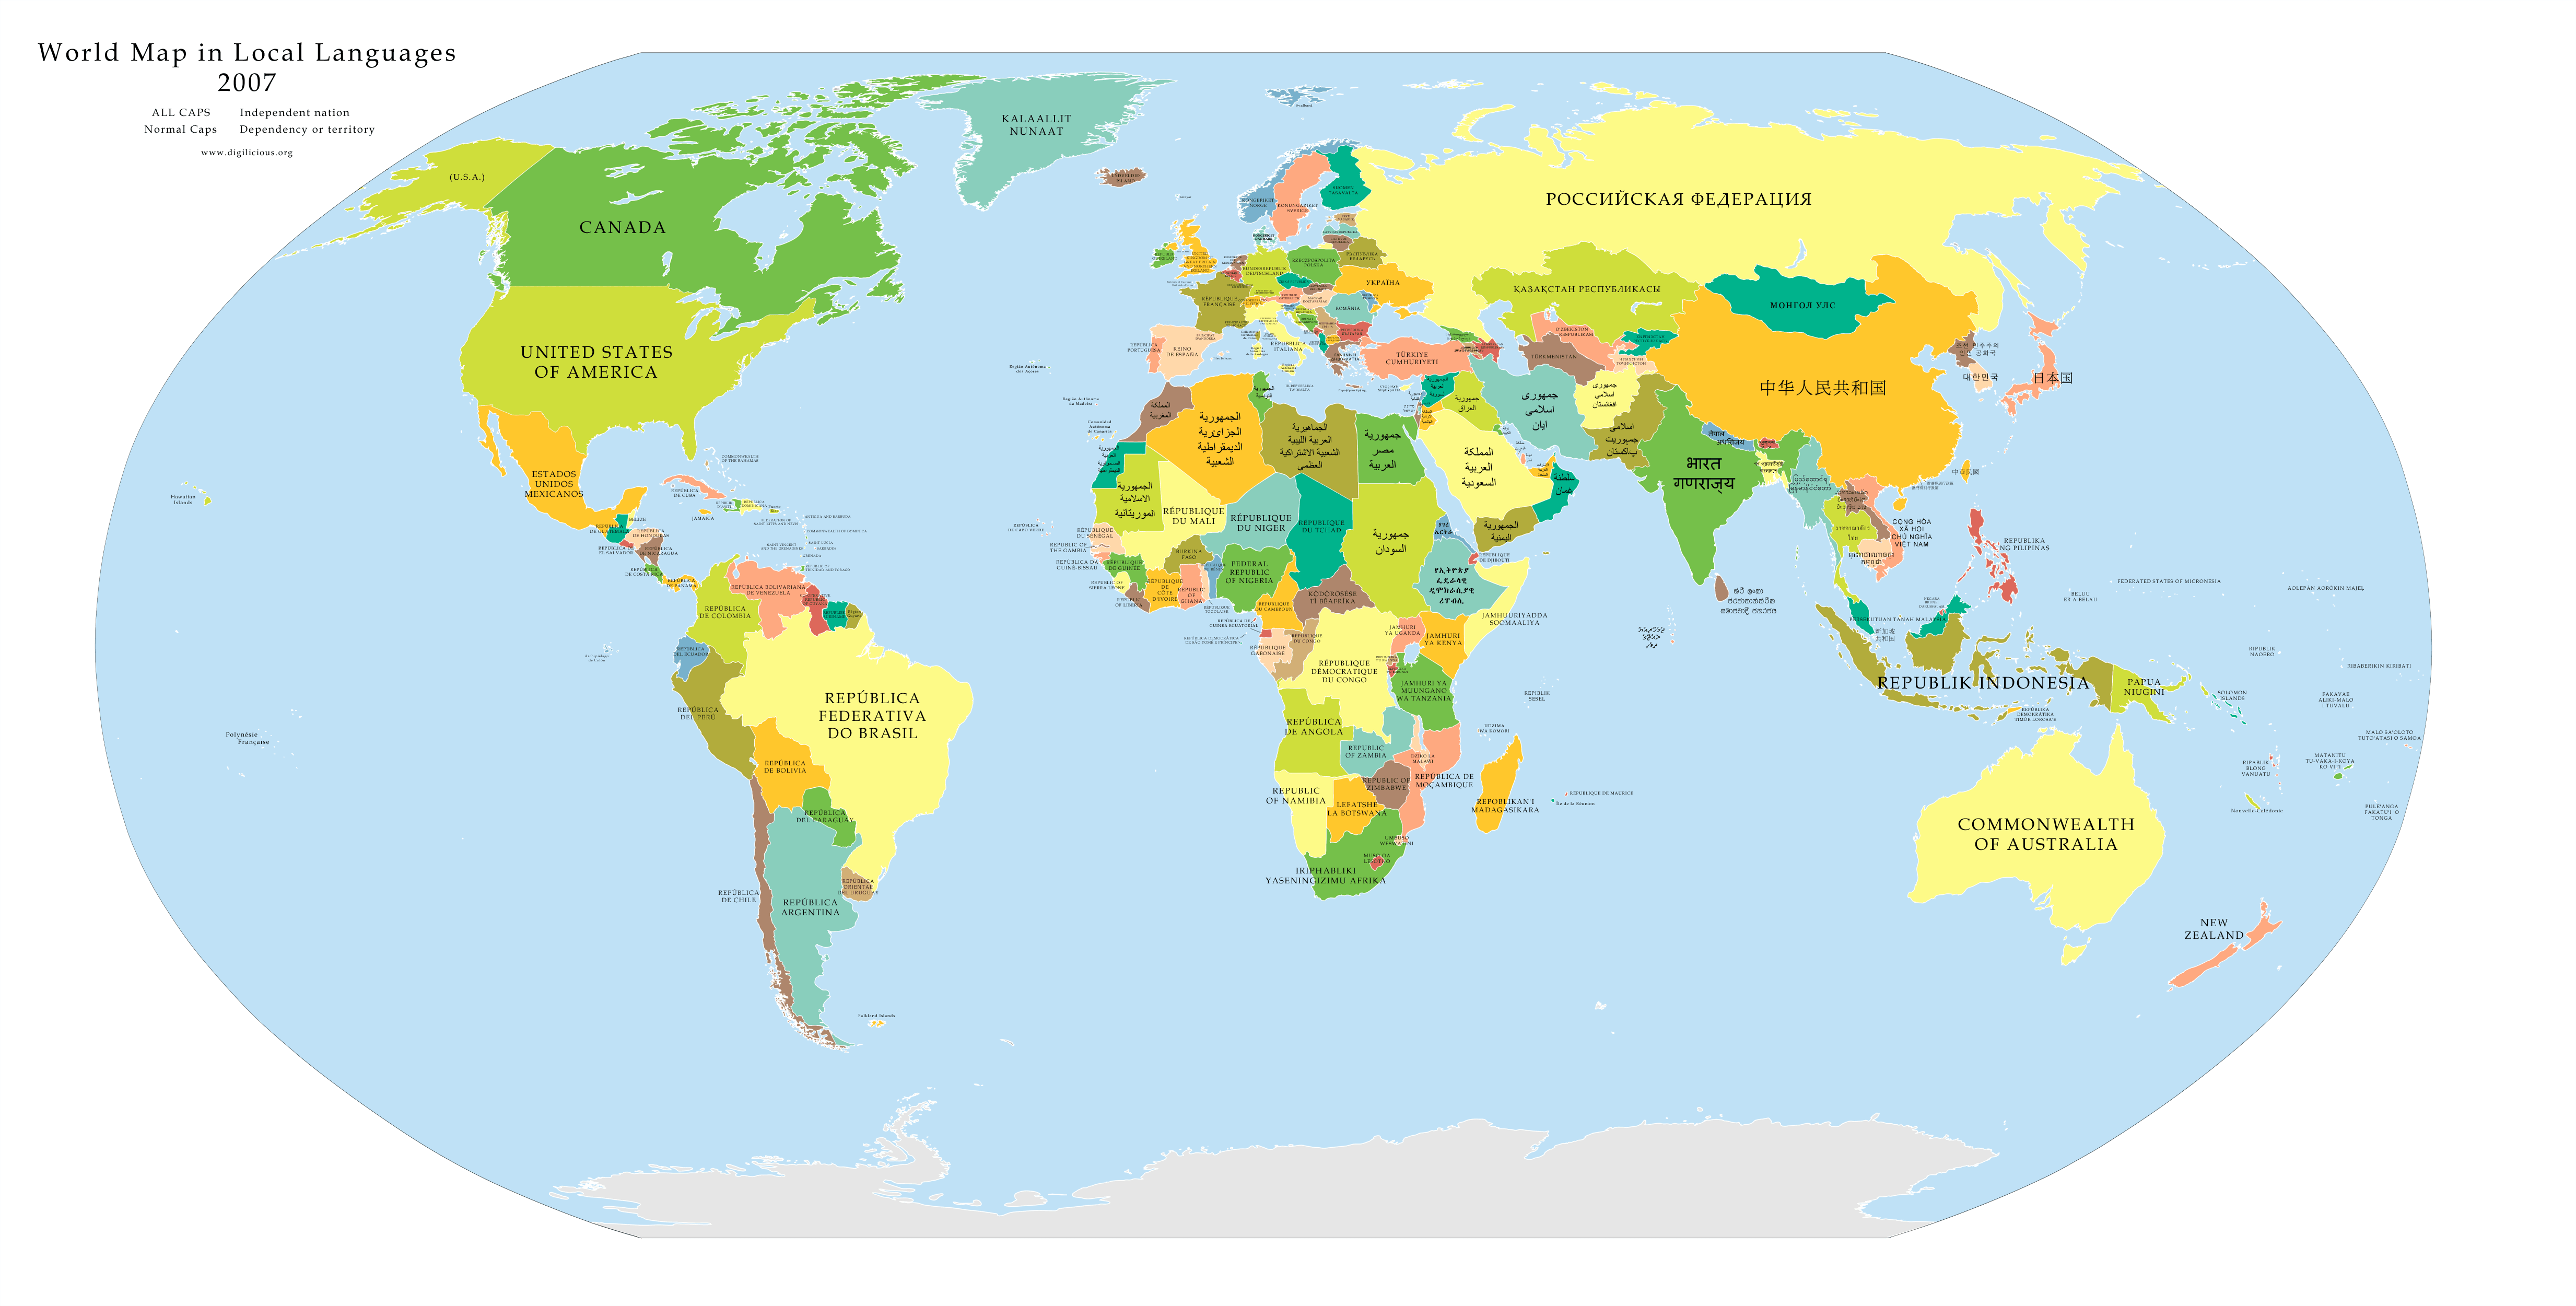 World Map in Local Languages